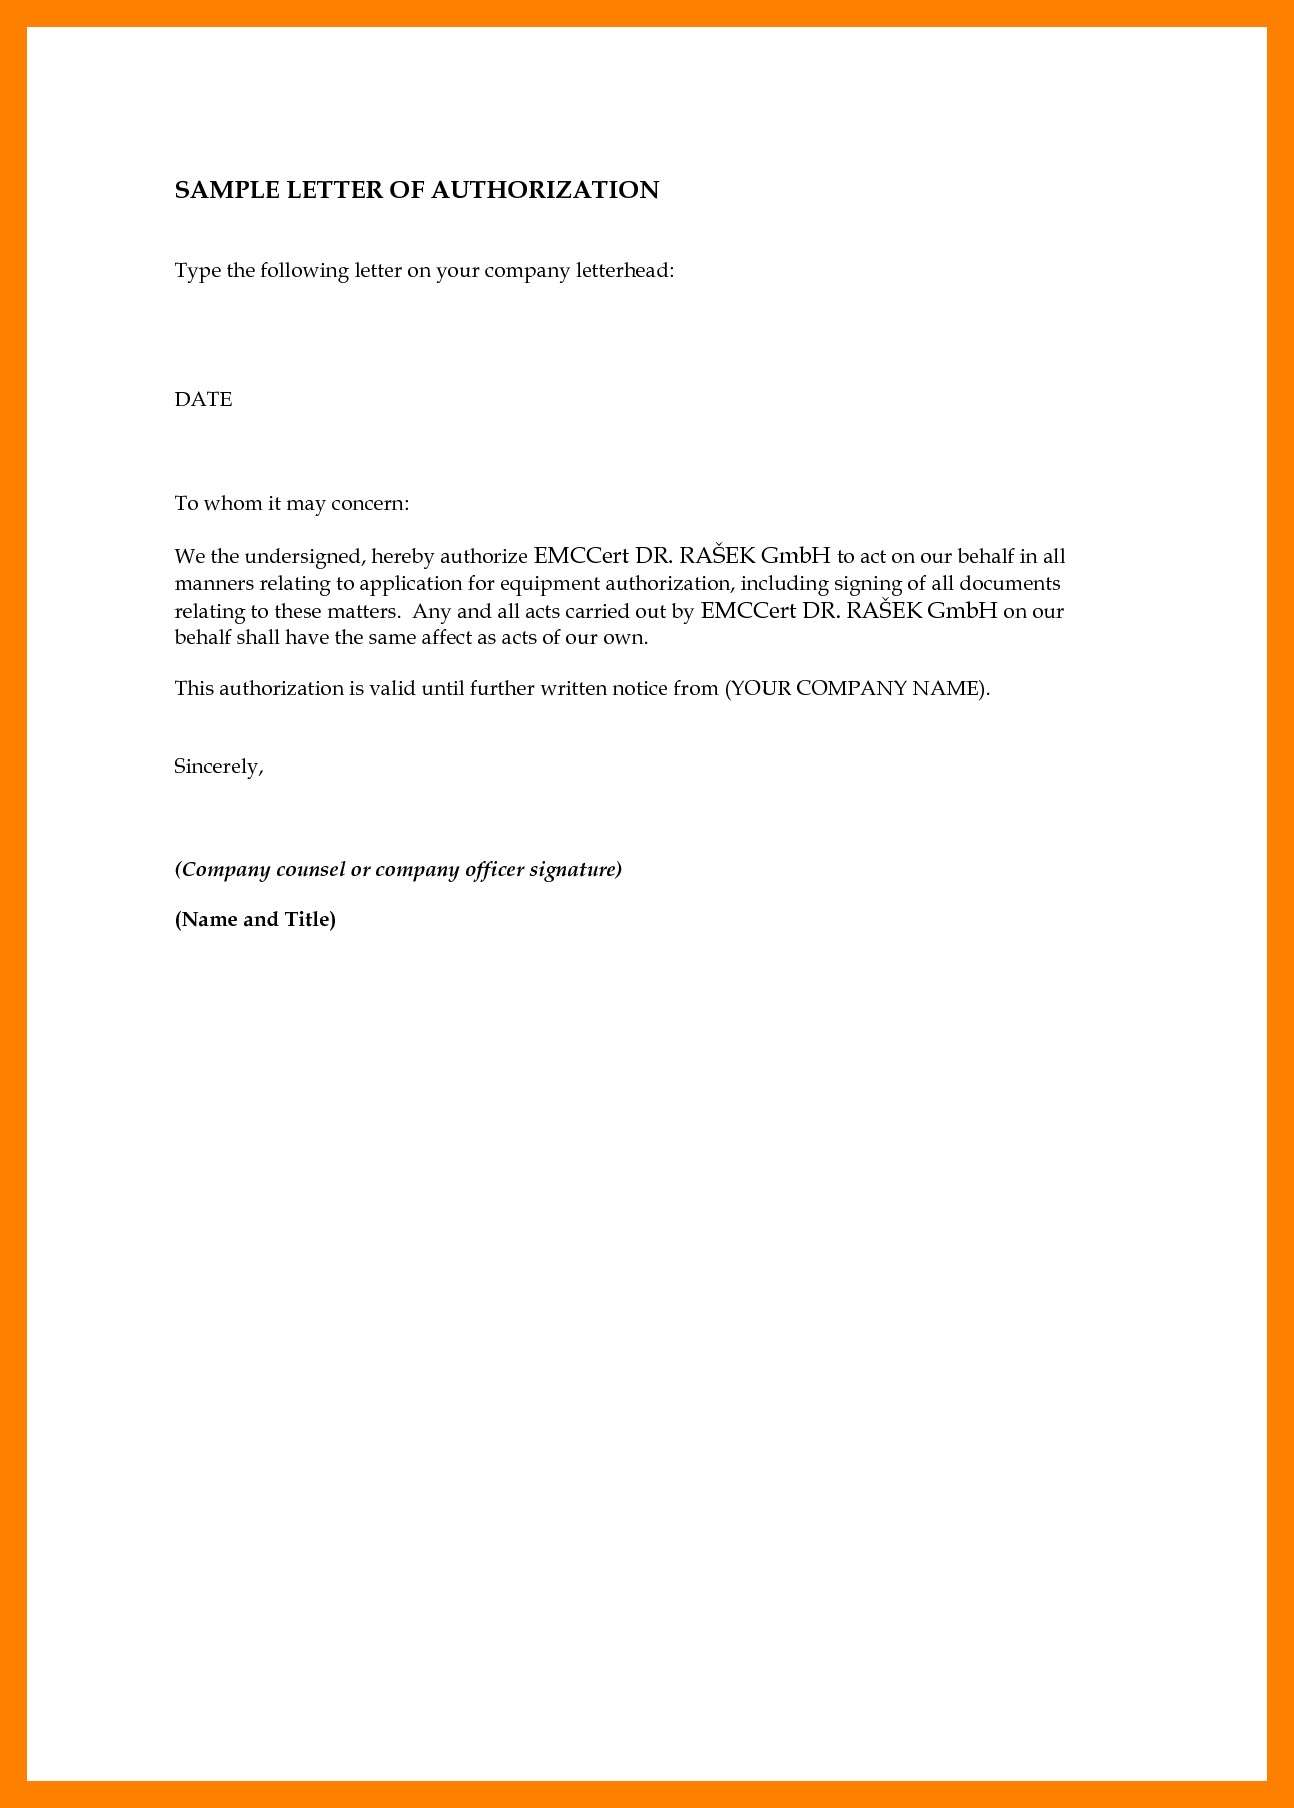 Authorization Letter Sample to Act on Behalf PDF